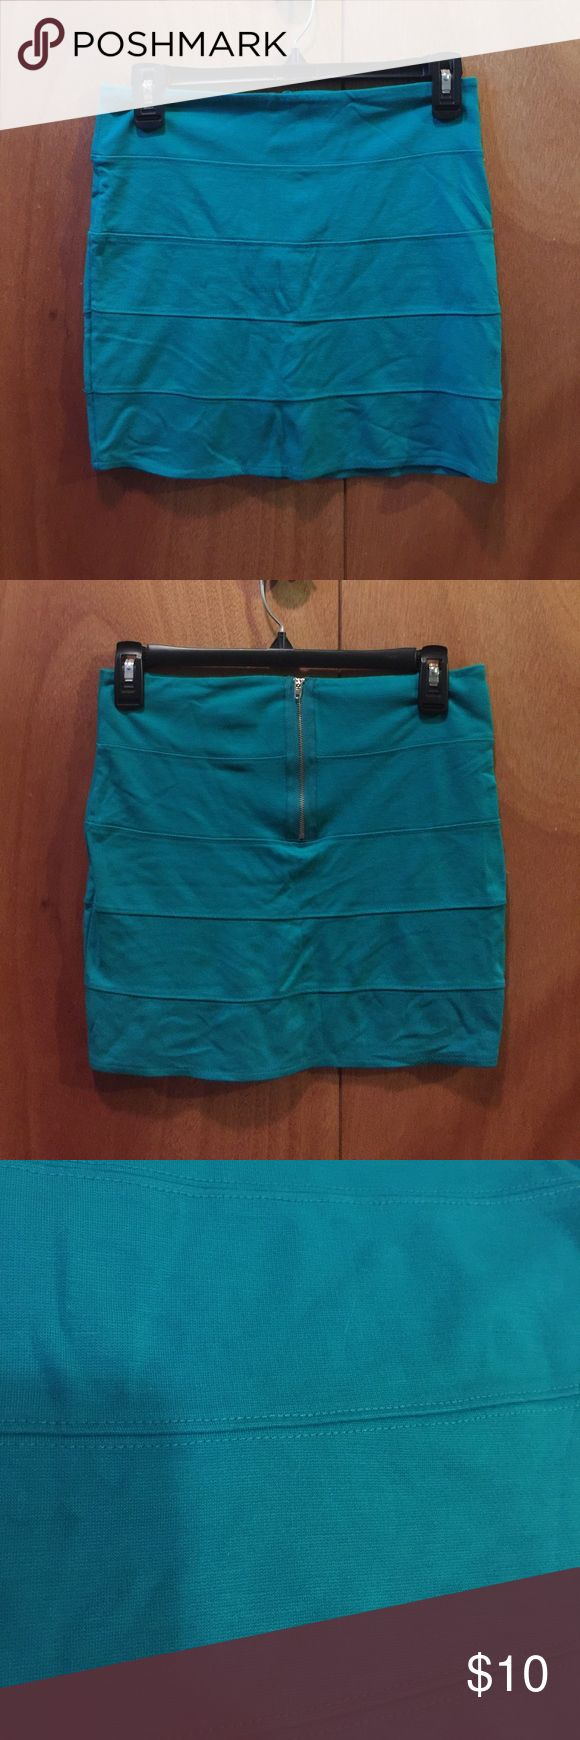 Green paneled mini skirt Green paneled mini skirt with gold back zipper detail. Gently used. Color is true green. Color was not fully captured in picture. Super cute for a night out 💃🏻 Skirts Mini